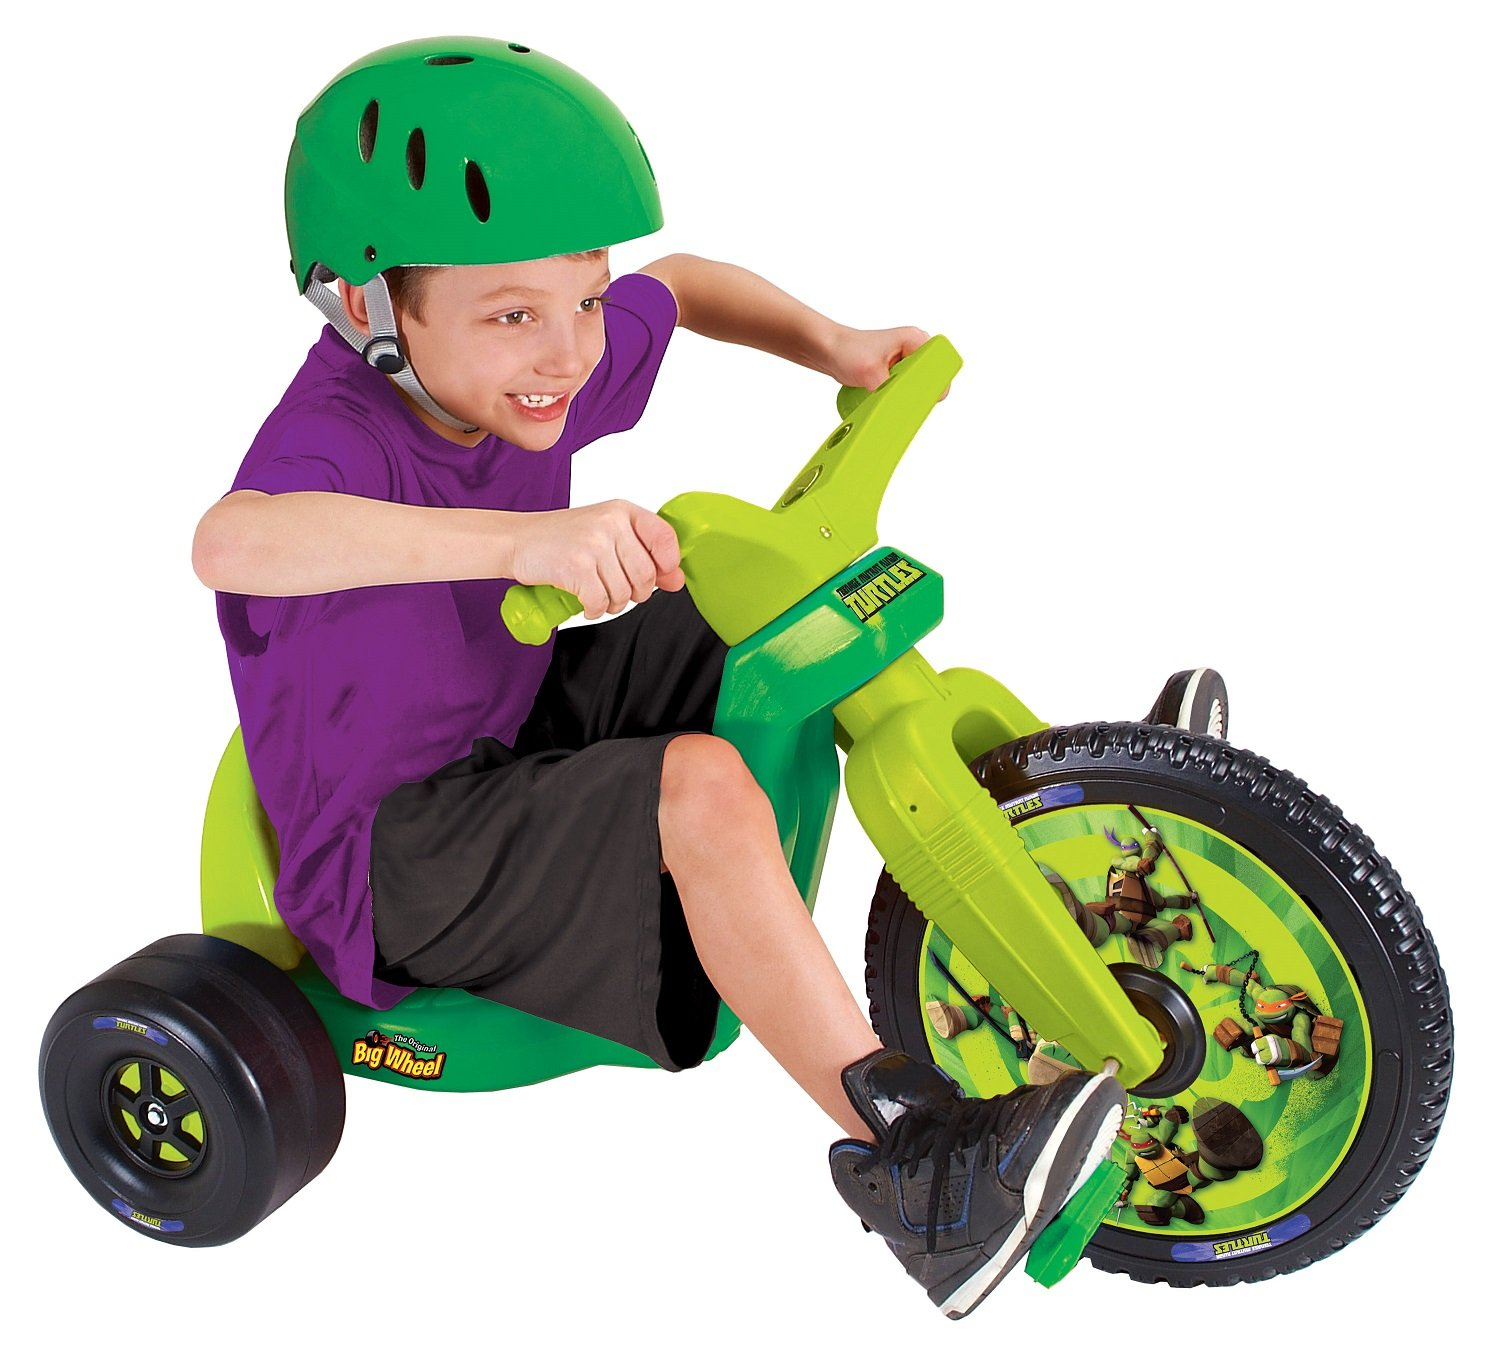 Big Wheel 16'' Teenage Mutant Ninja Turtles Racer by The Original Big Wheel